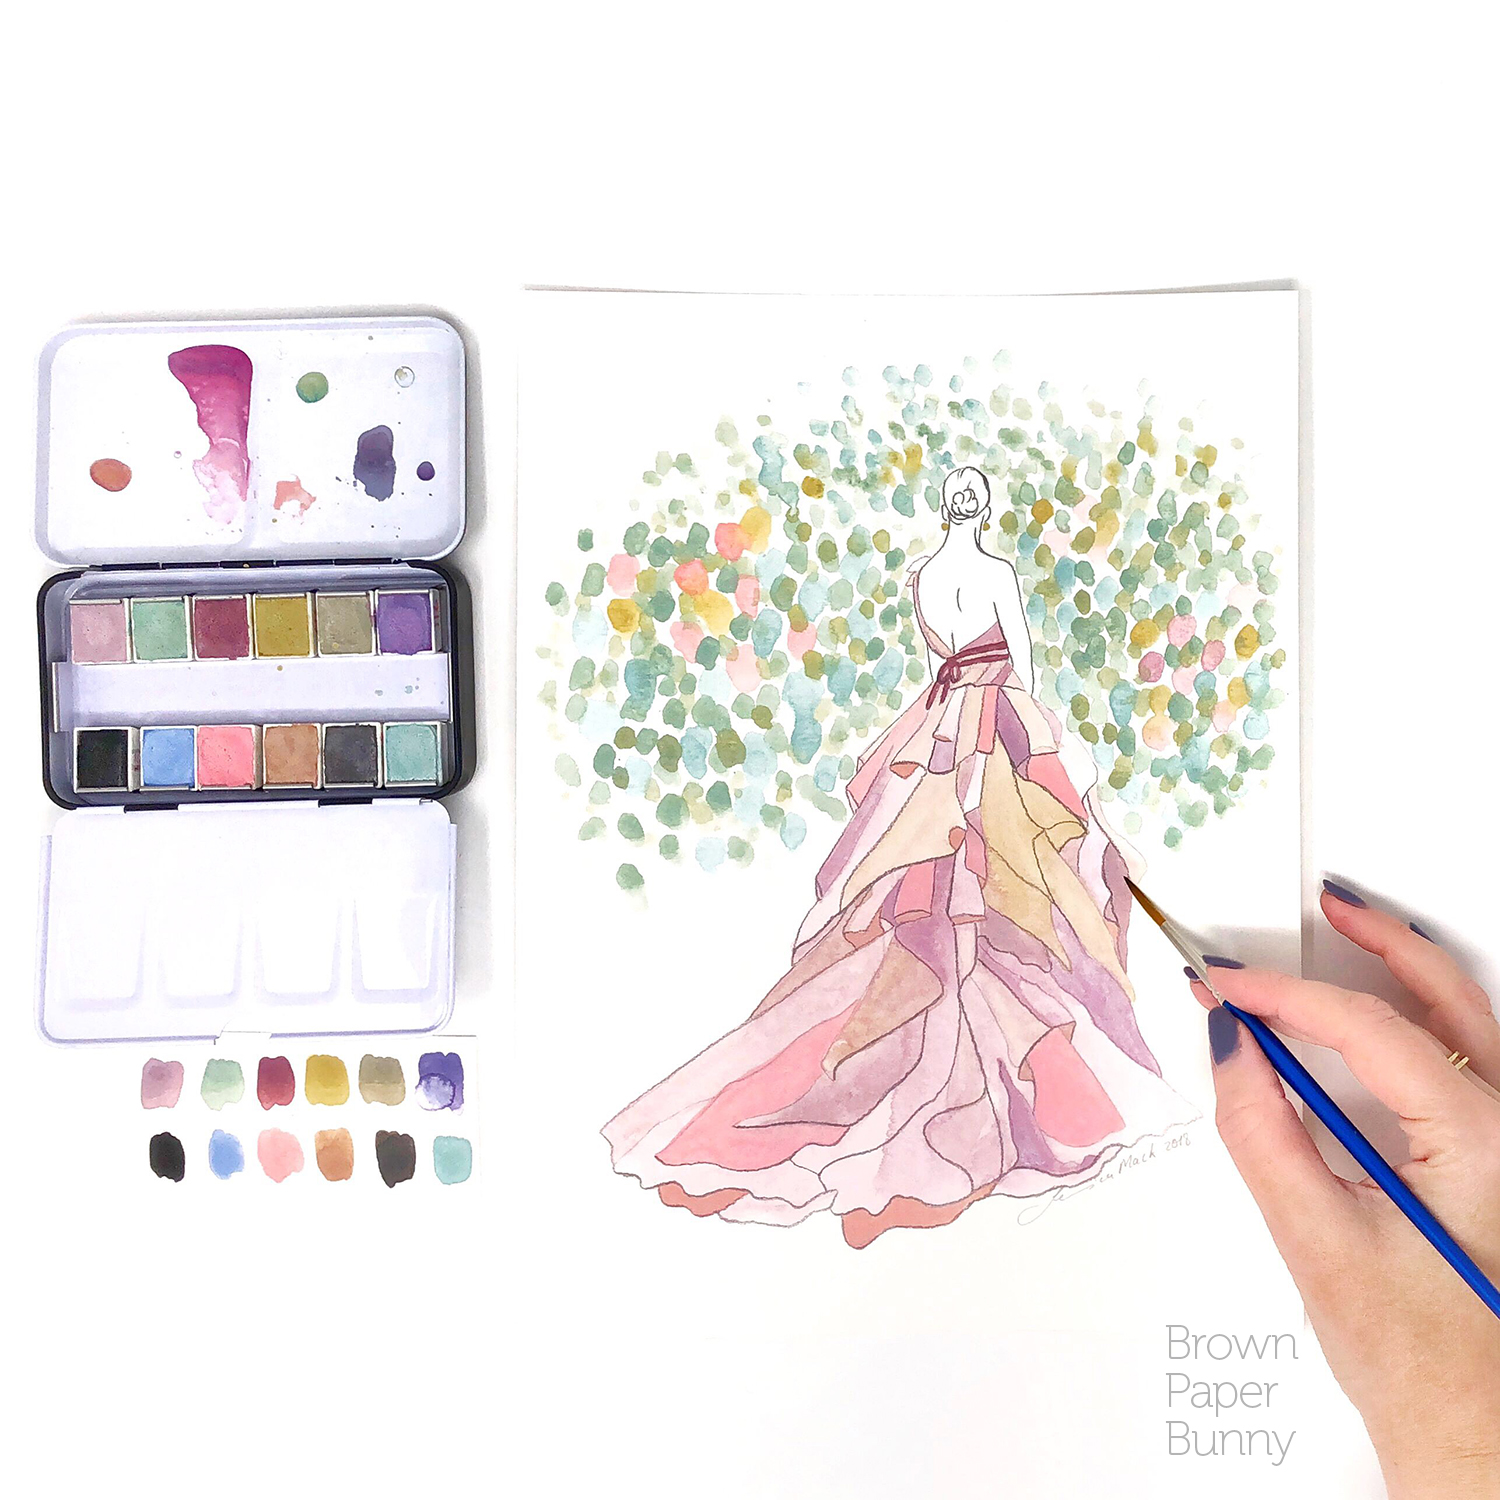 Watercolor fashion illustration created for Prima Watercolors to launch their Vintage Pastel set.